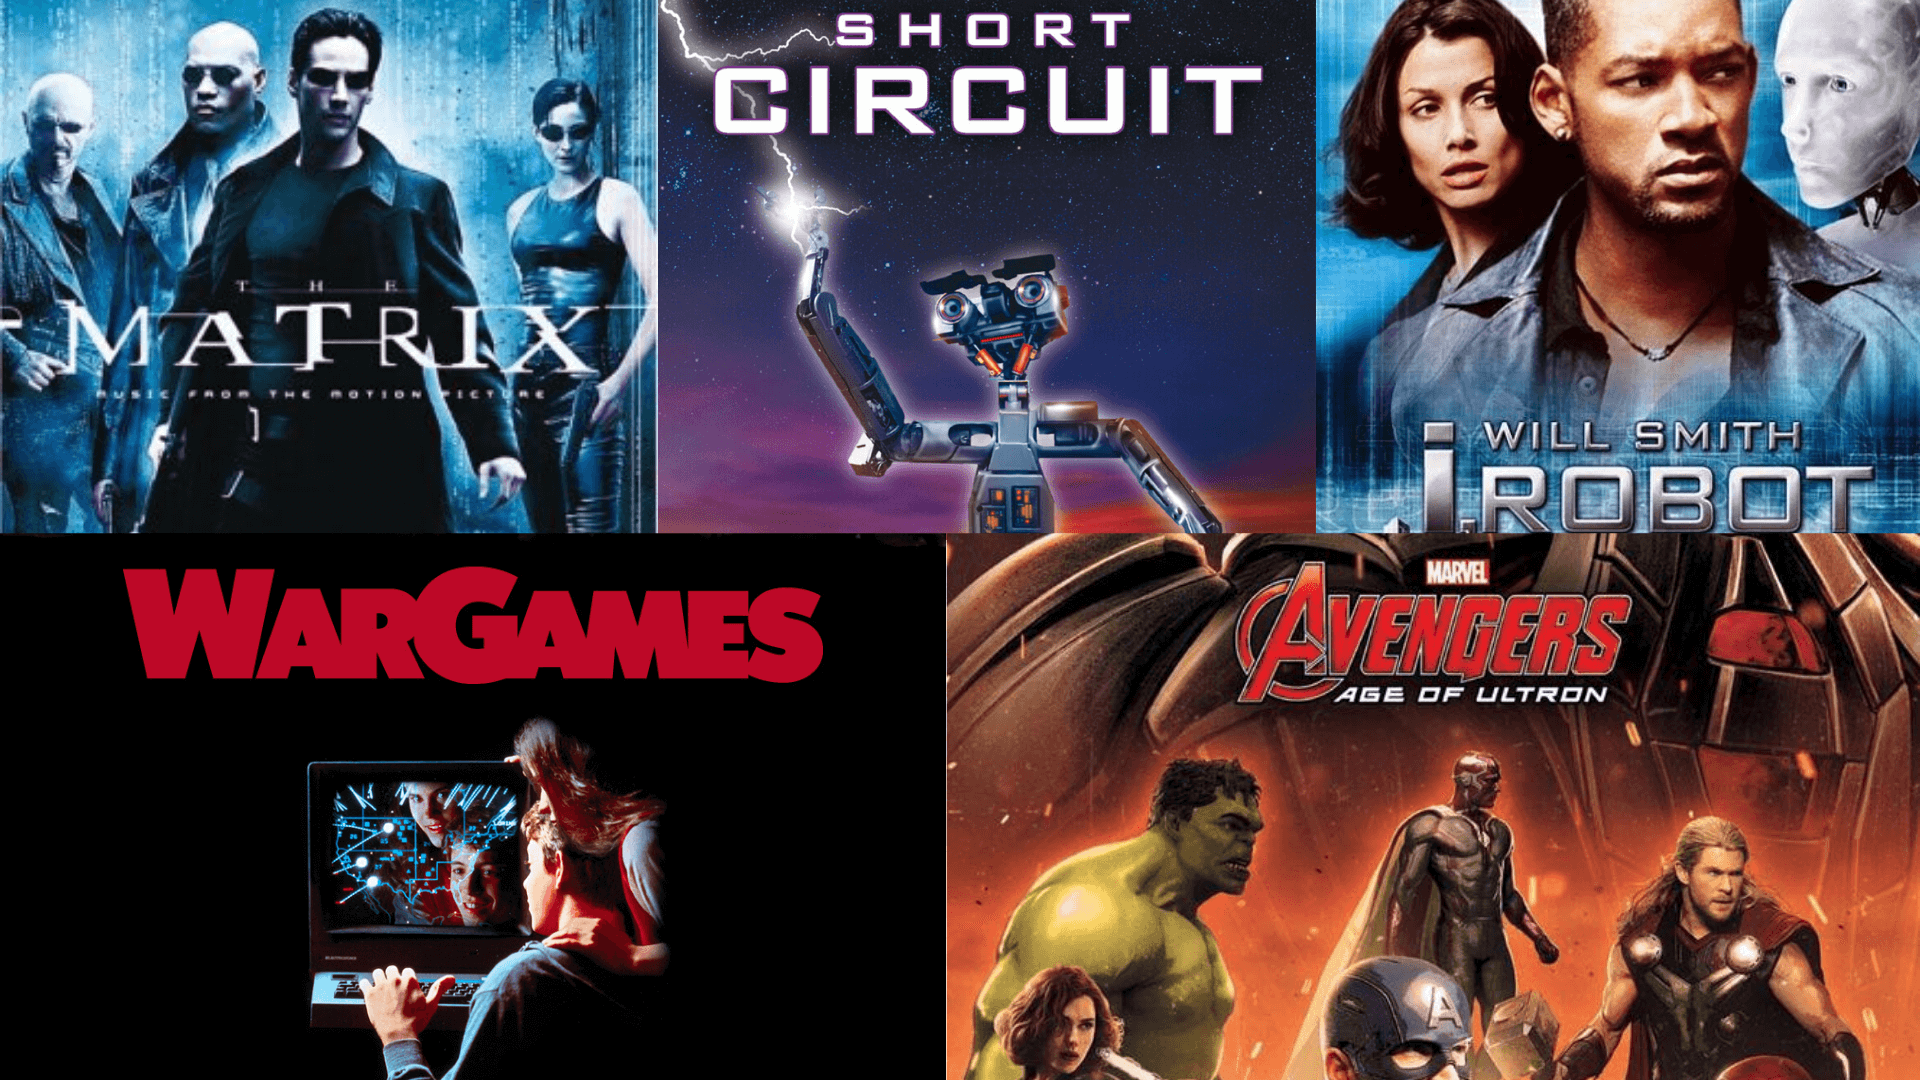 Movie poster collage of The Matrix, Short Circuit, I Robot, War Games, Avengers Age or Ultron